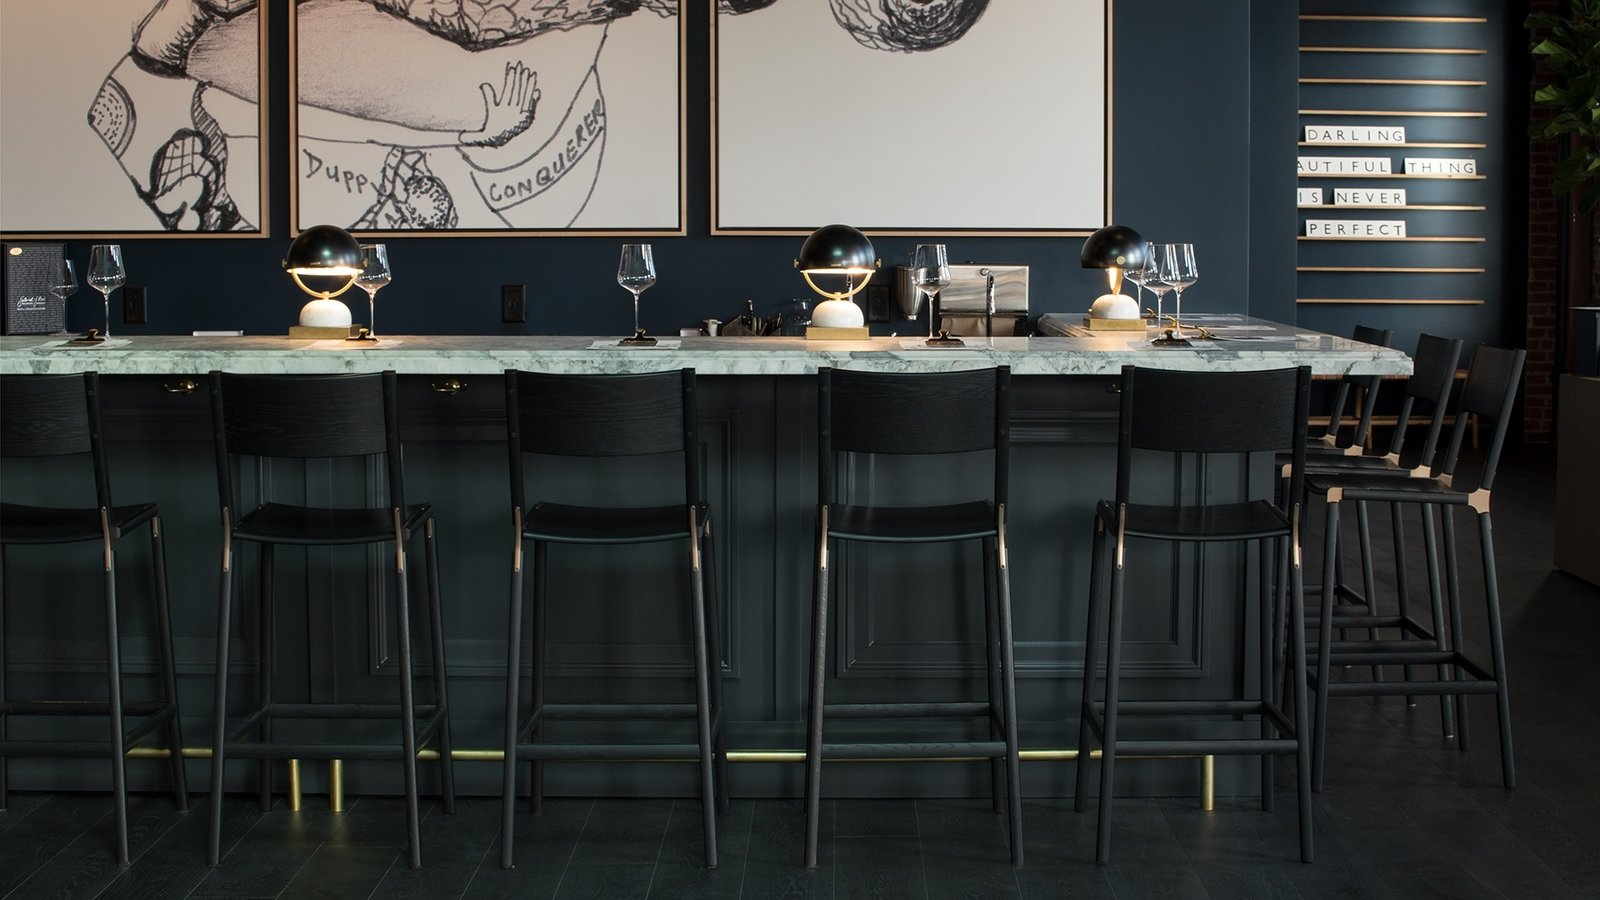 Dining Room, Bar, Stools, and Table Lighting  Photo 6 of 12 in 12 Rising Creators to Know Right Now